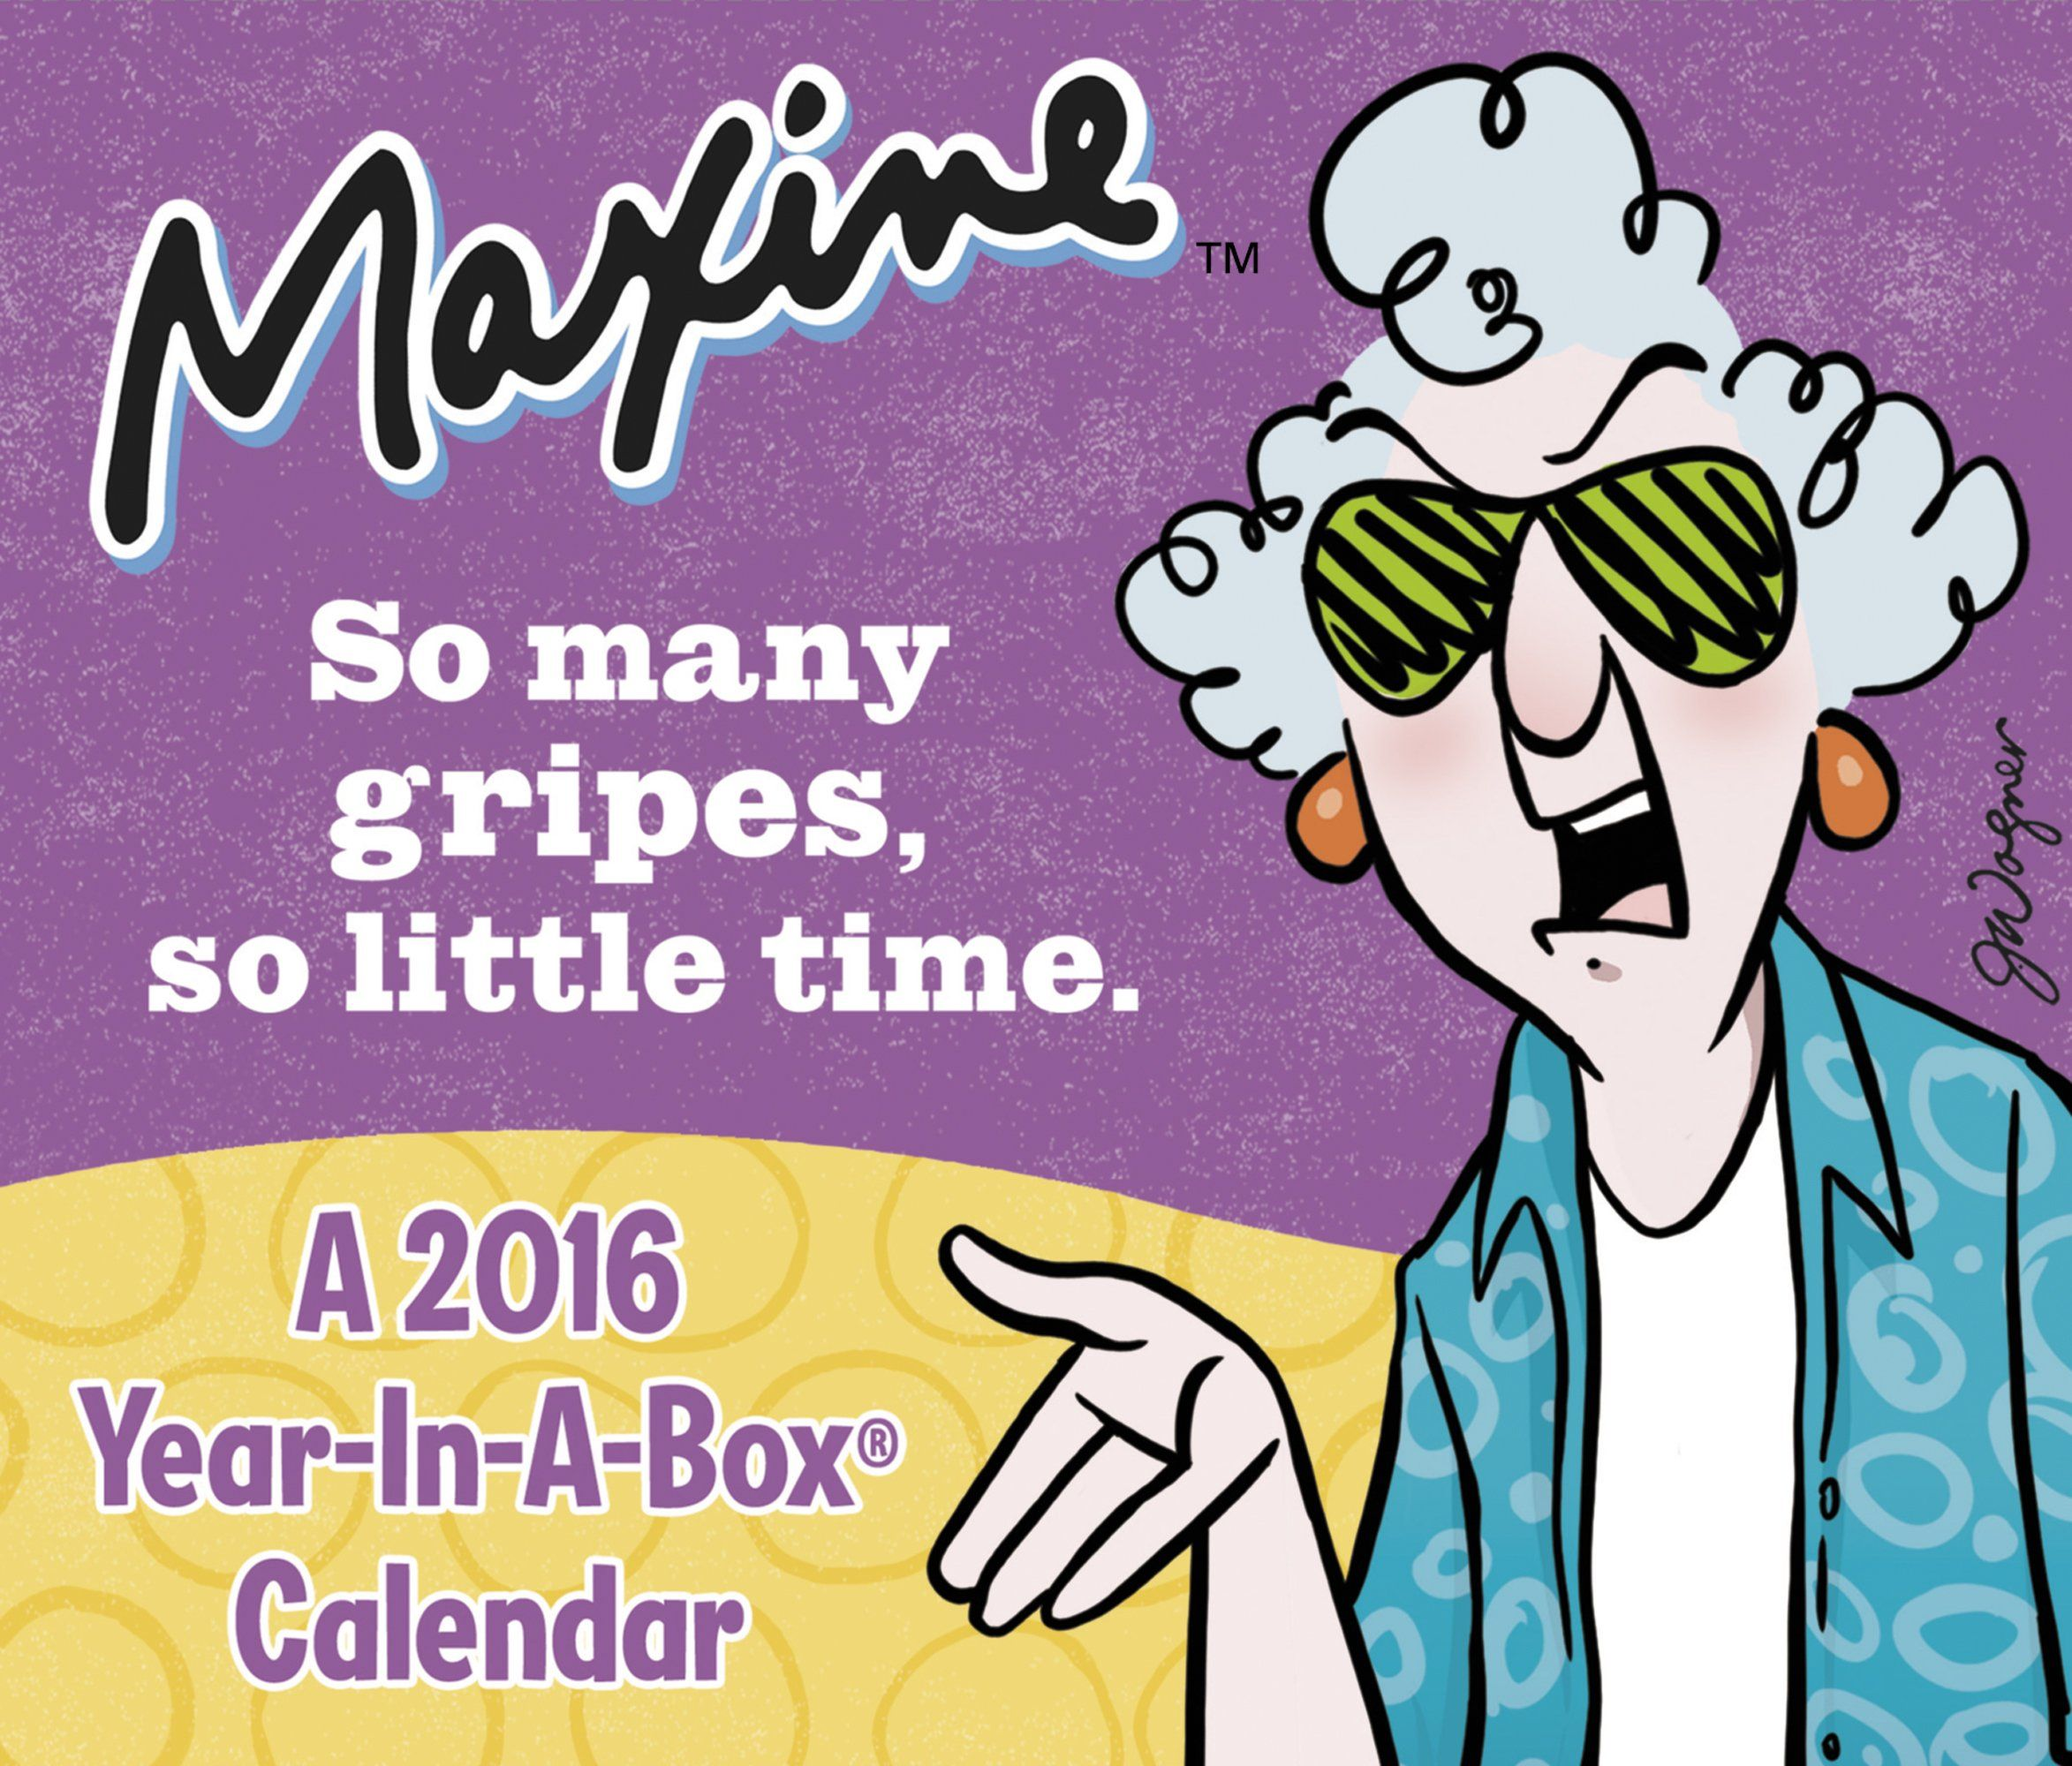 Top 10 Best Funny Day-to-Day Calendars 2020 | Funny ...